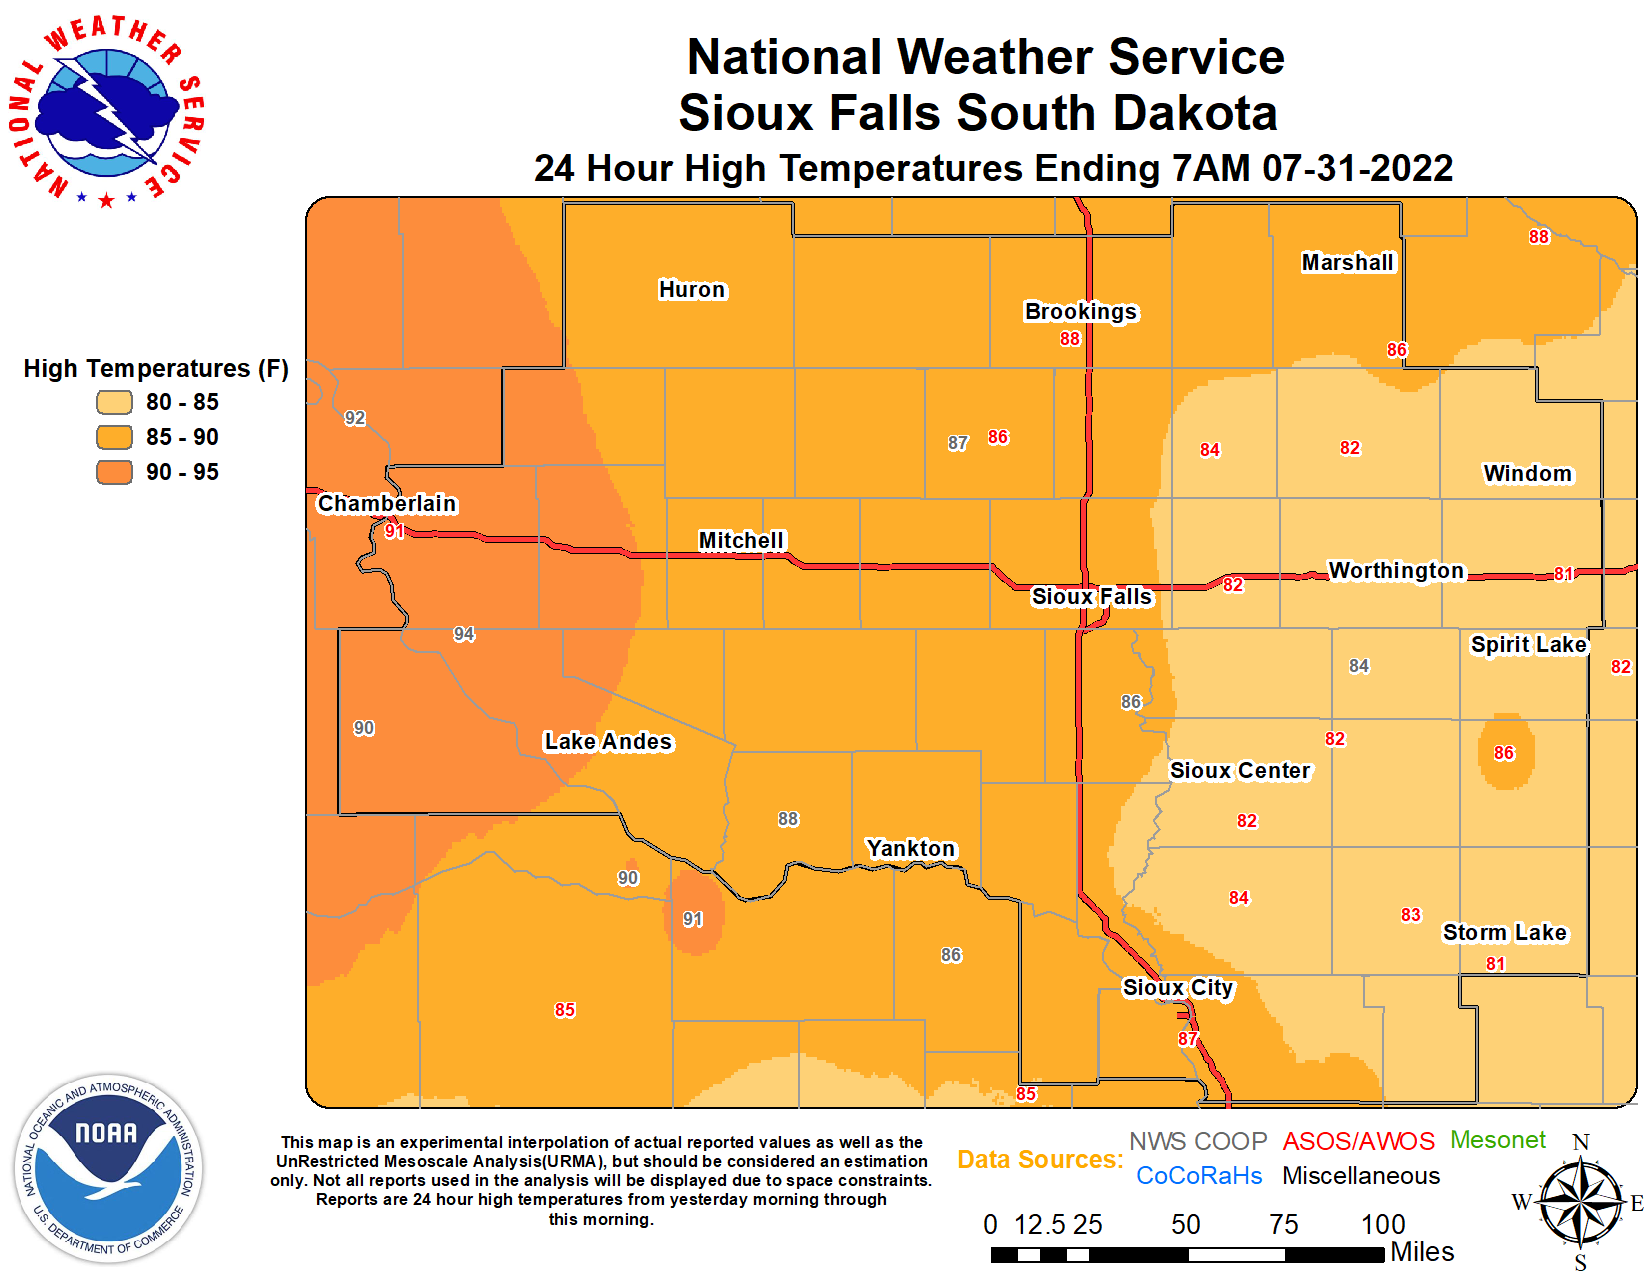 Daily Climate Maps thumbnail - Click to view full size maps for high/low temperatures and precipitation.